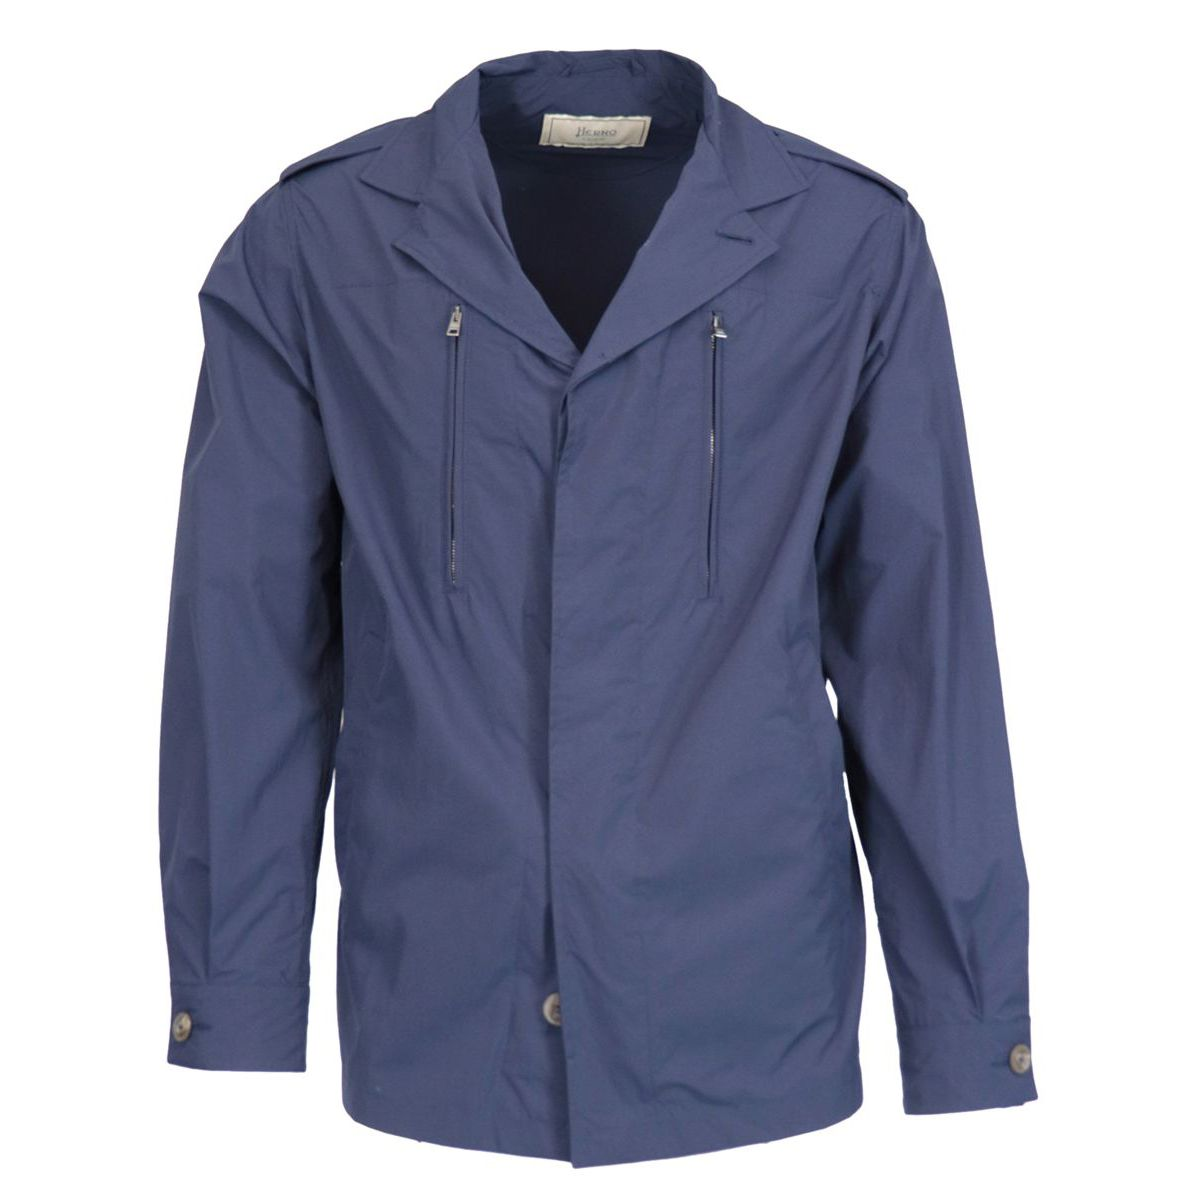 Windproof nylon jacket with zip pockets on the chest Blue Herno